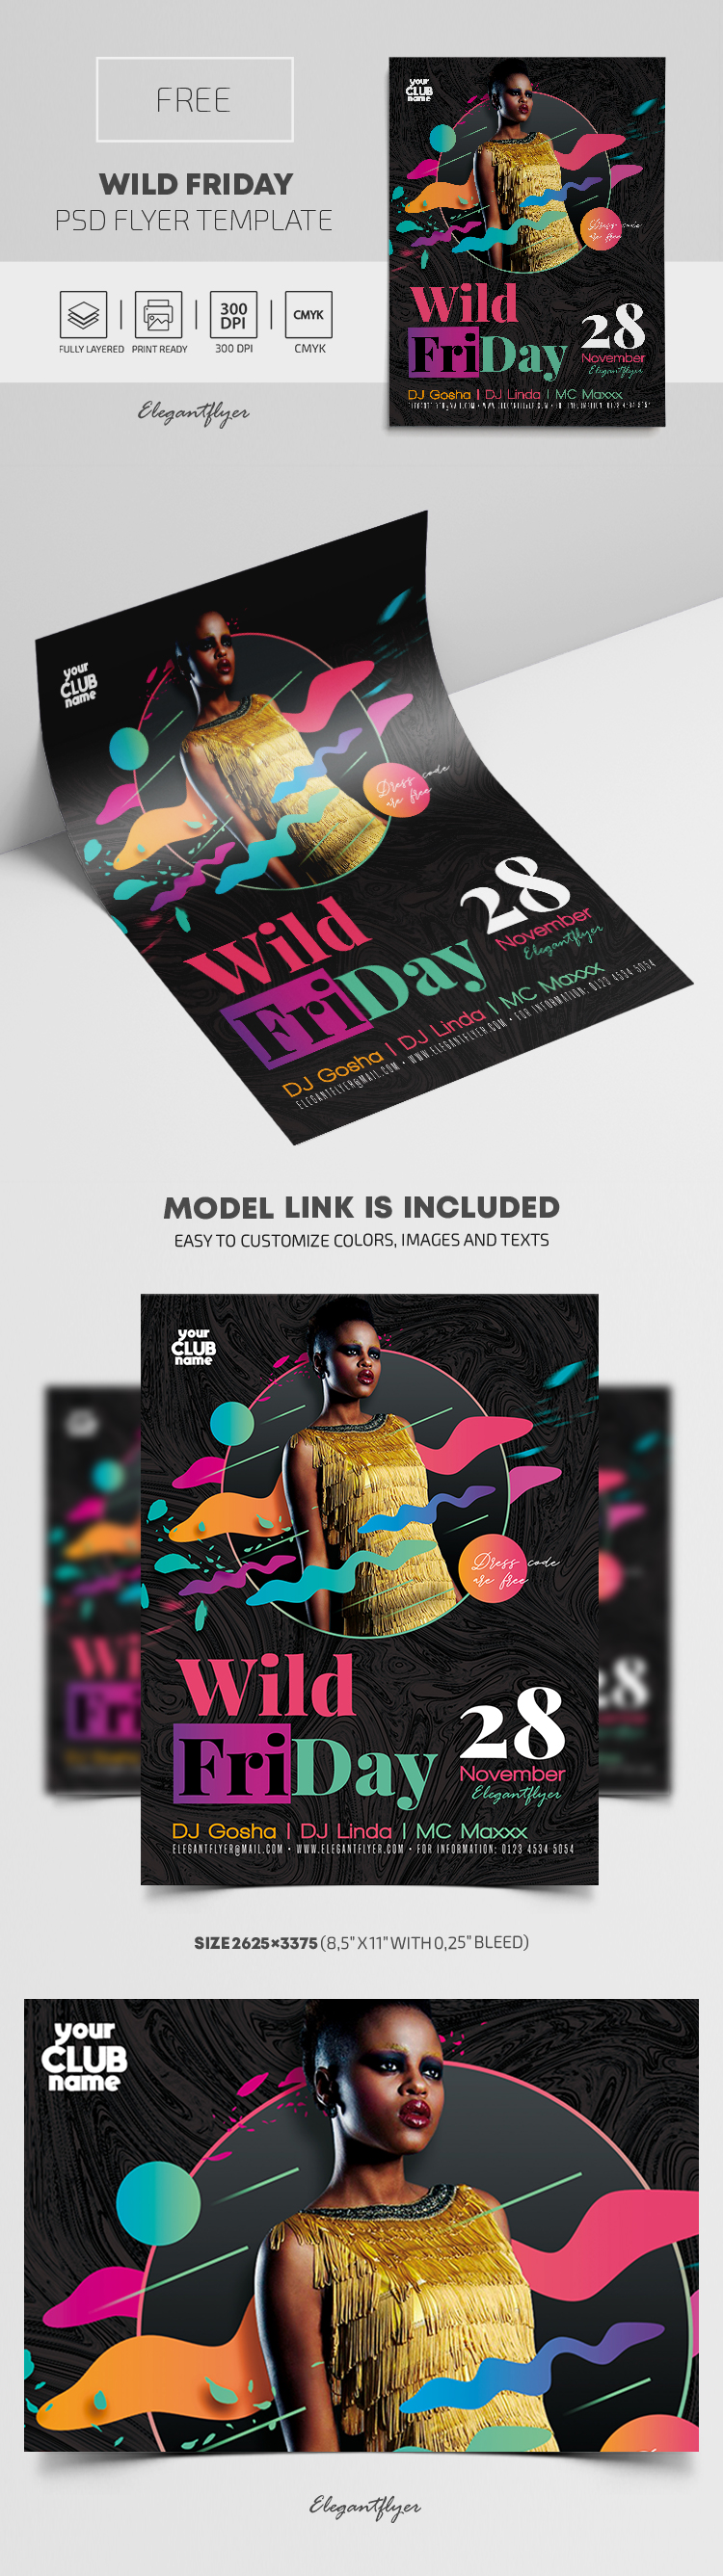 Wild Friday – Free PSD Flyer Template